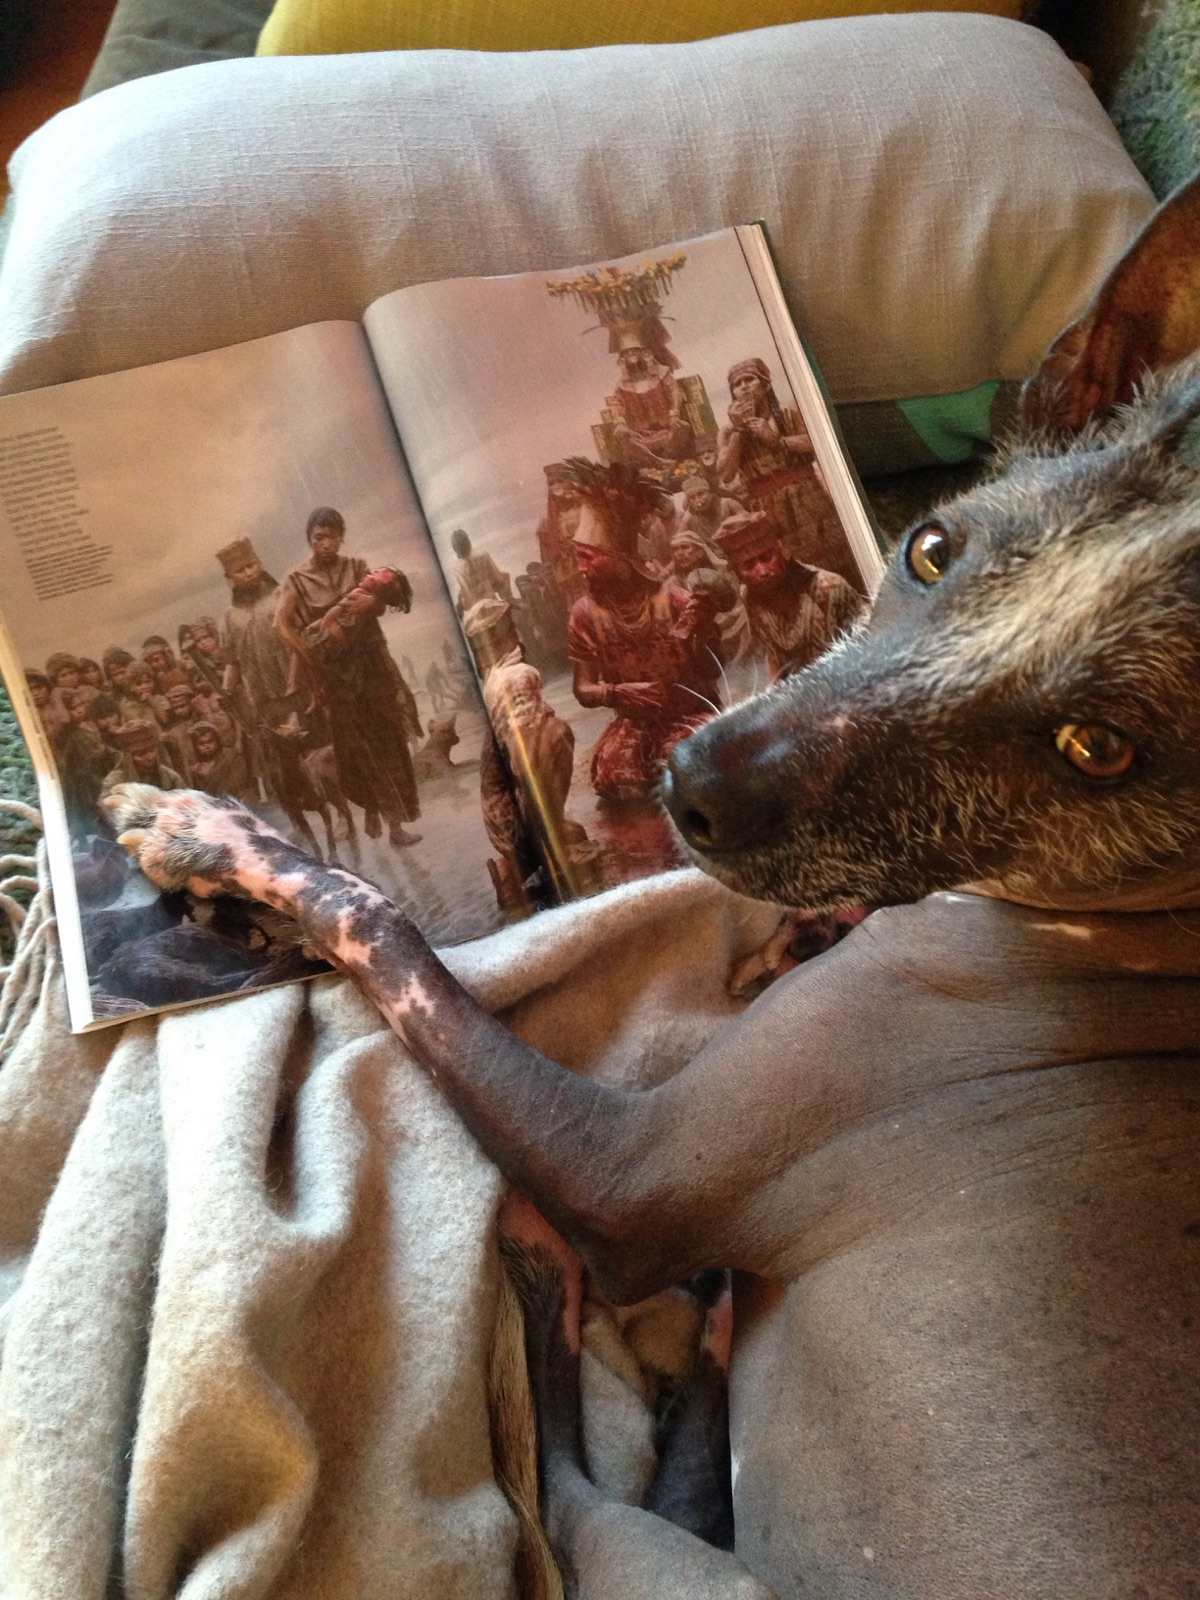 Kish-Kish Guengerich reading a recent National Geographic article about Central-Coast child sacrifices, with an artwork that features perros calatos.